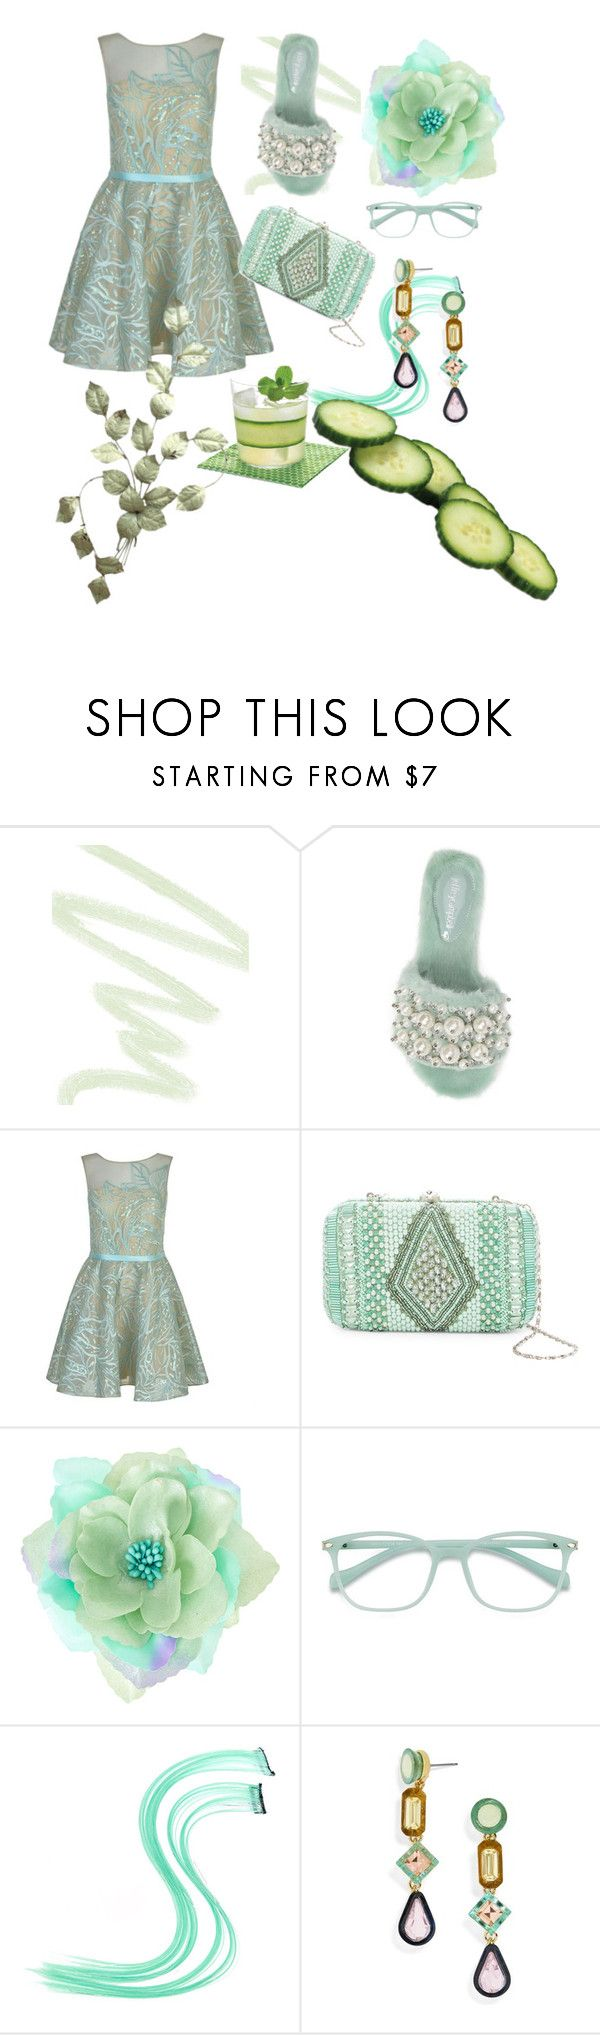 """Cucumber Mint Refresher"" by gigi-sessions ❤ liked on Polyvore featuring Dolce&Gabbana, Jeffrey Campbell, Forever Unique, G-lish, EyeBuyDirect.com and BaubleBar"